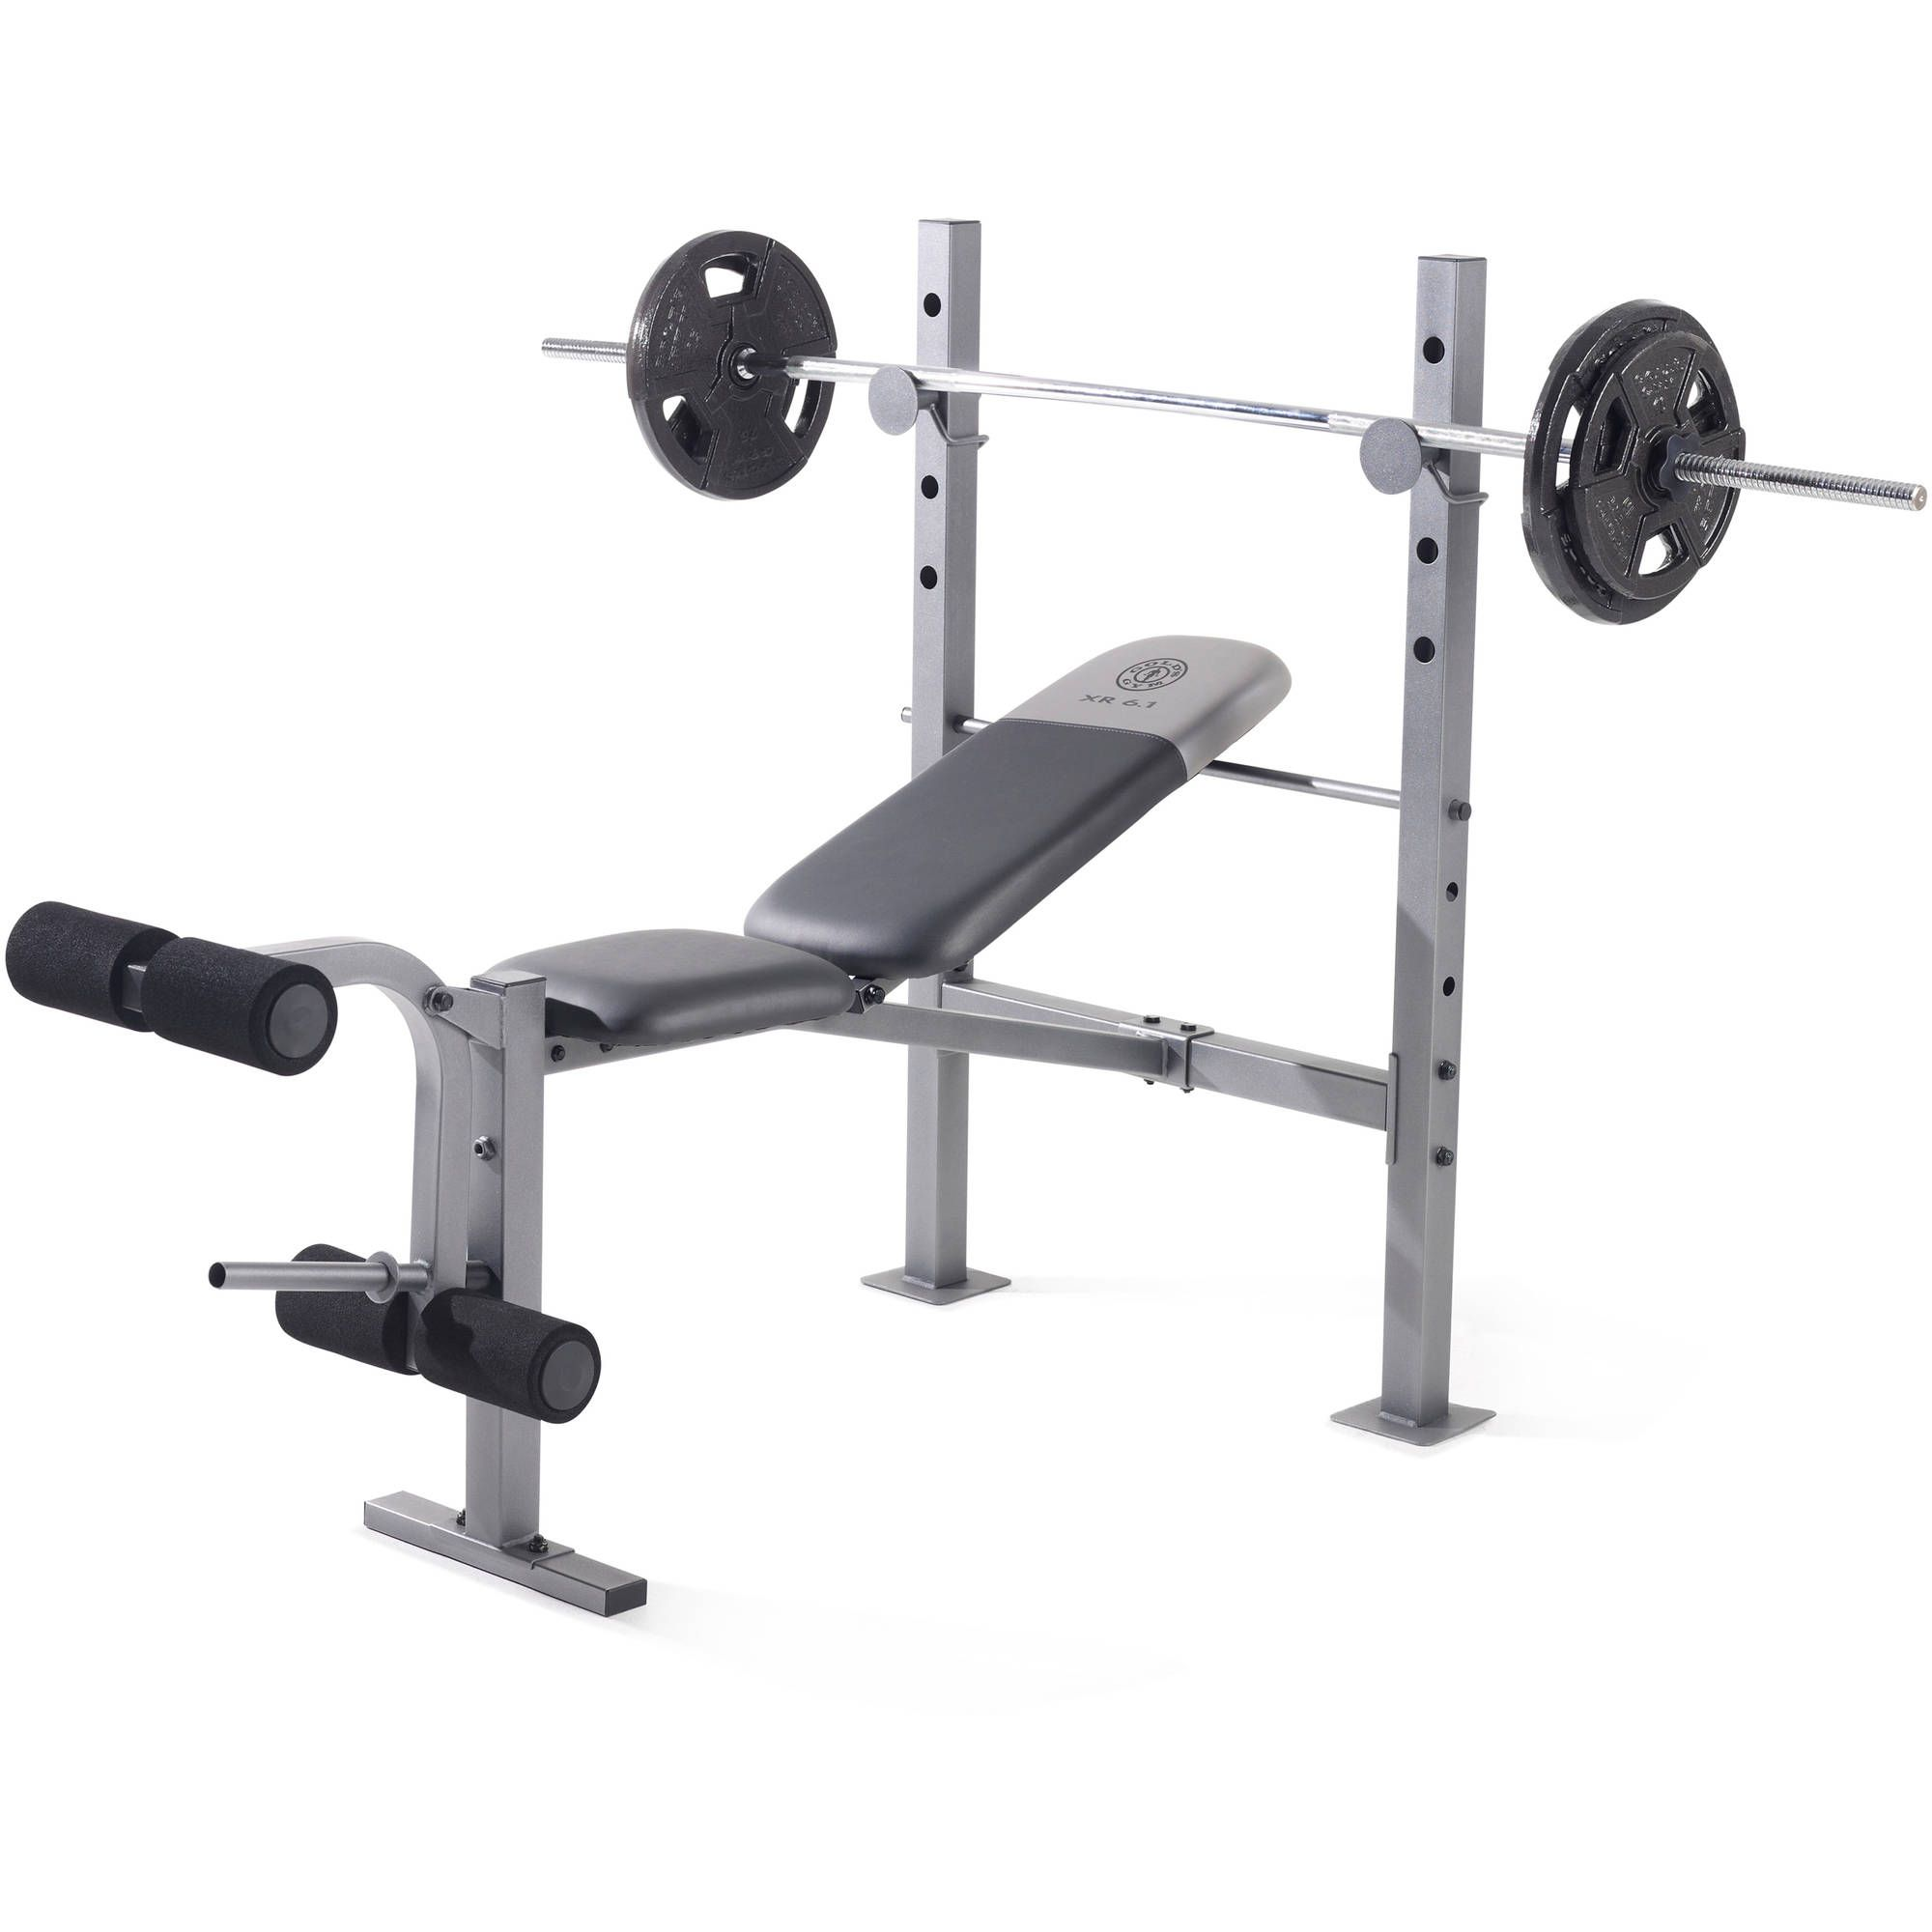 132 Reference Of Bench Press Gym For Sale In 2020 Weight Benches Weight Bench Set Bench Set